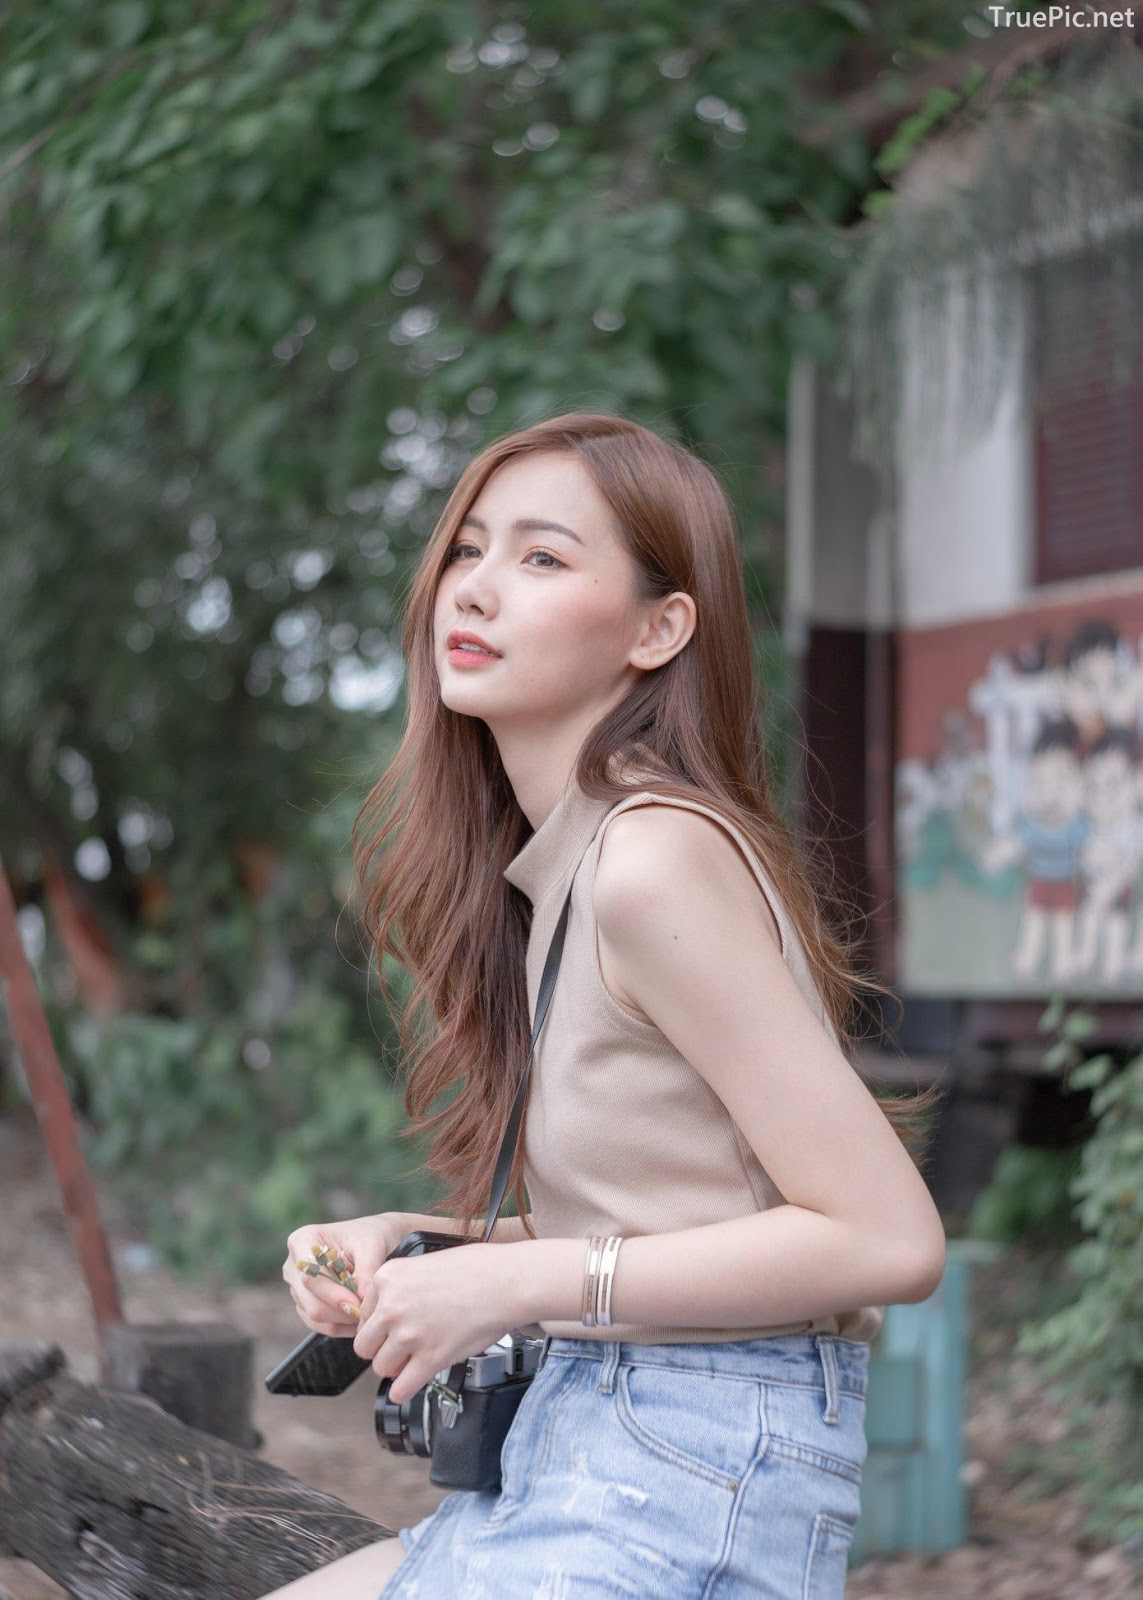 Thailand beautiful model - Pla Kewalin Udomaksorn - A beautiful morning with a cute girl - Picture 1